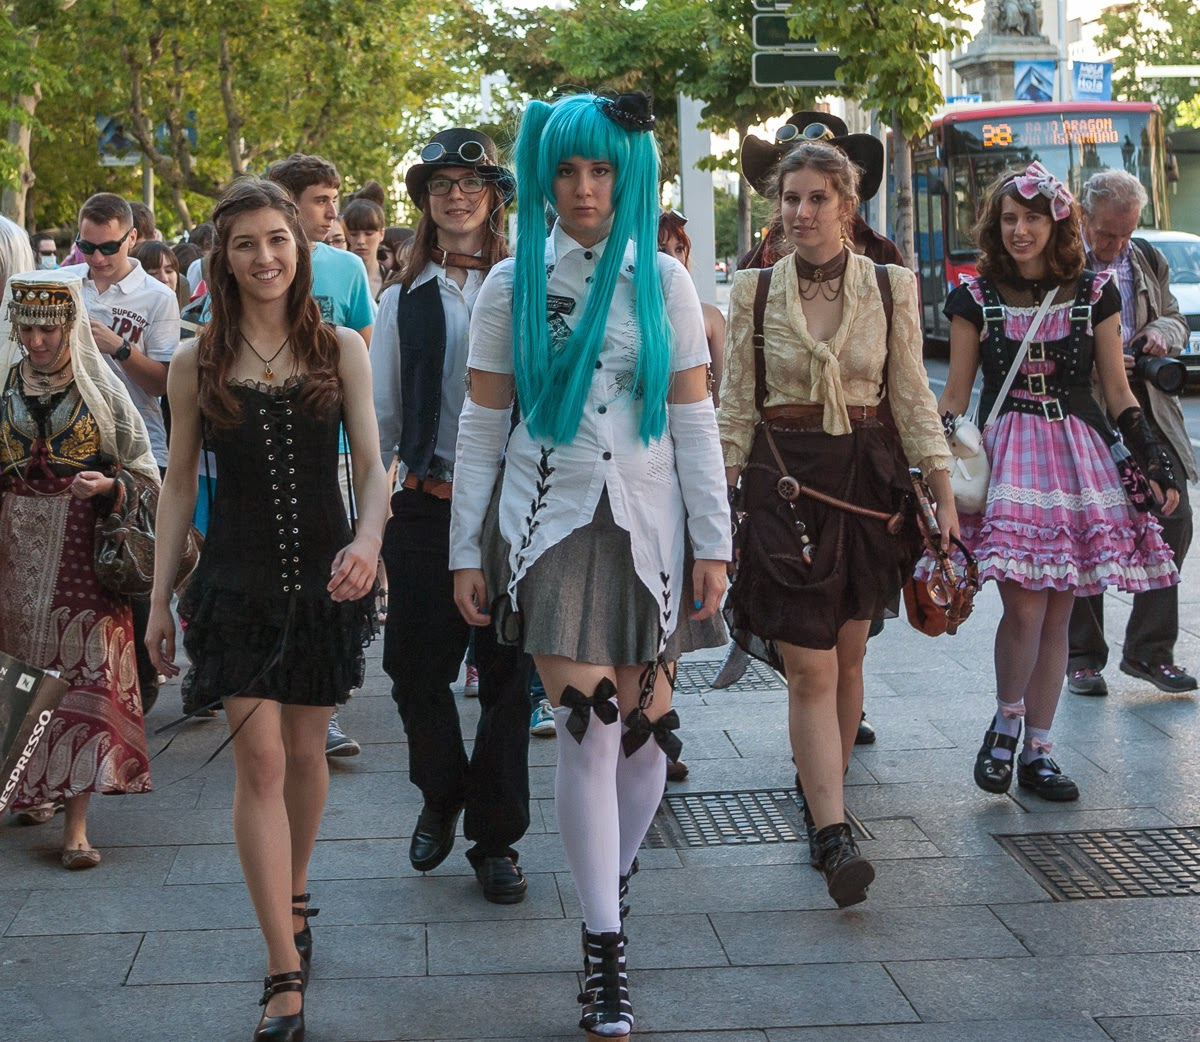 Harajuku Fashion Walk Zaragoza